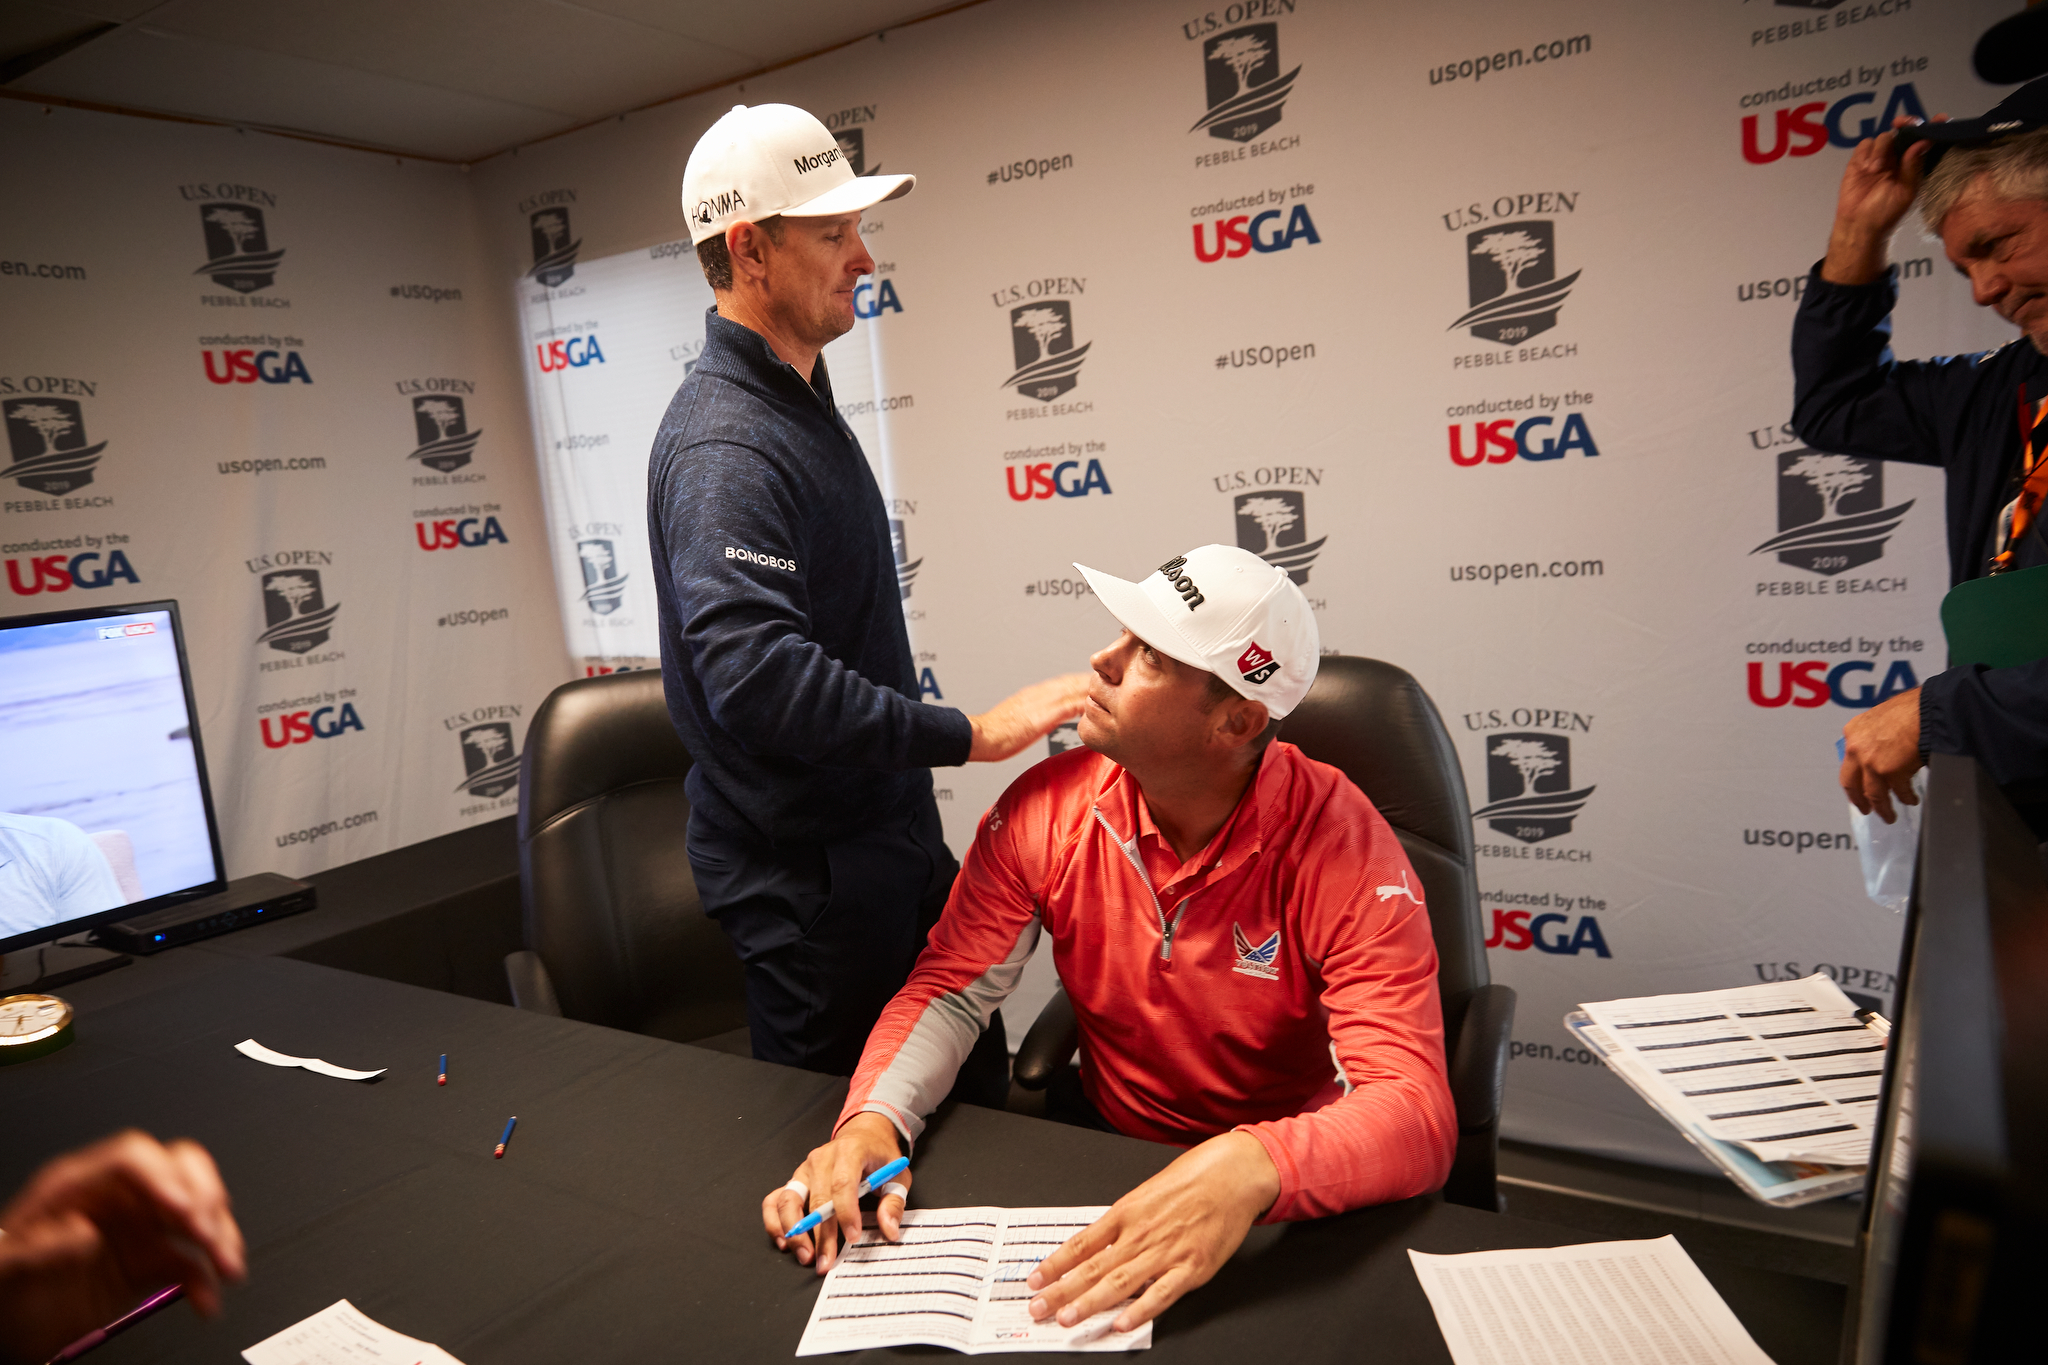 Justin Rose and Gary Woodland in the scoring area following the final round.  Canon 1DXM2, EF 24-70mm f2.8L.